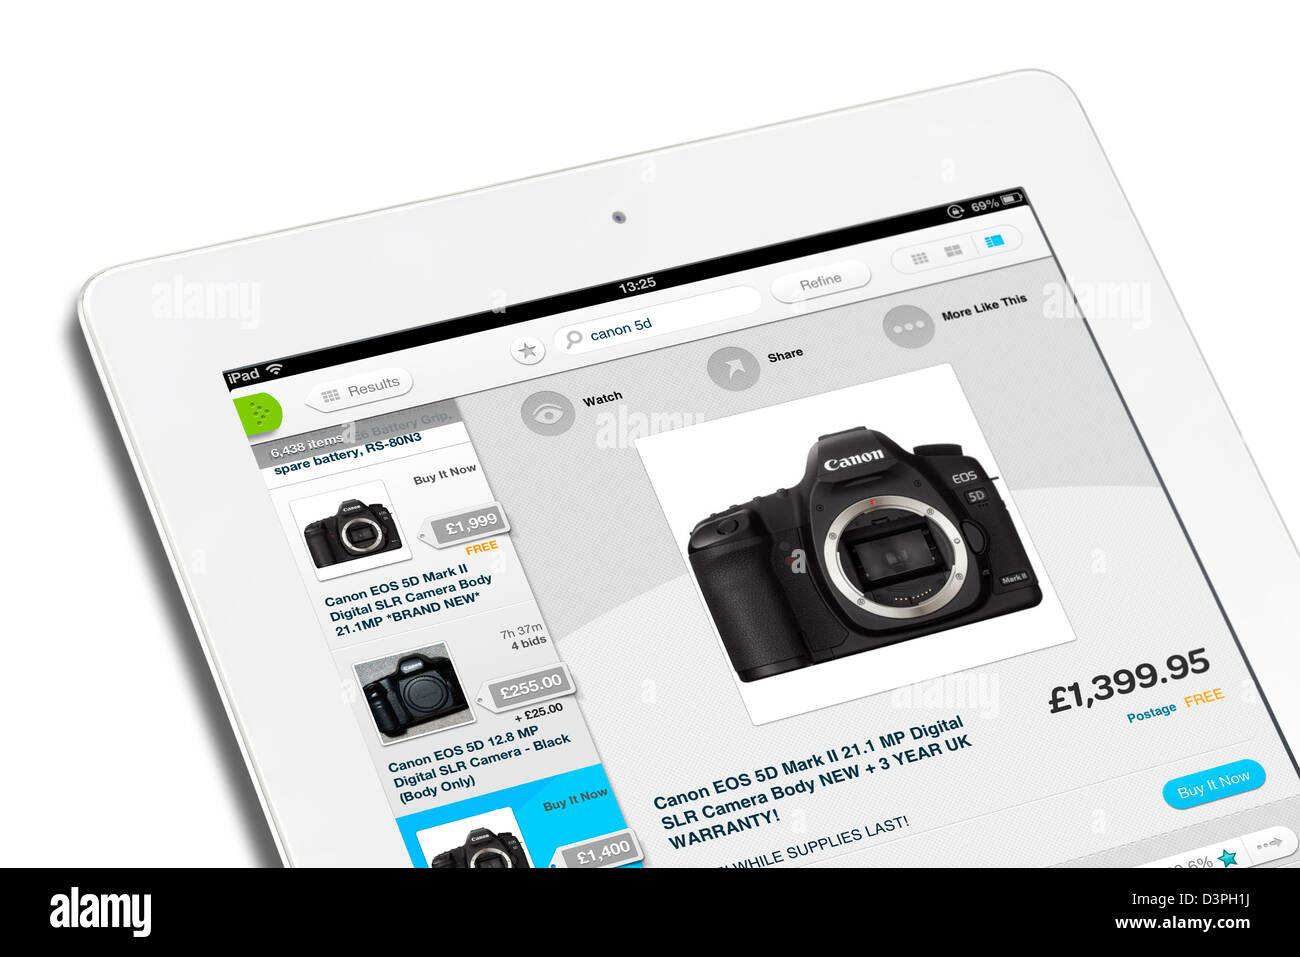 Looking At Cameras With The Ebay App On A 4th Generation Apple Ipad Stock Photo 53971390 Alamy